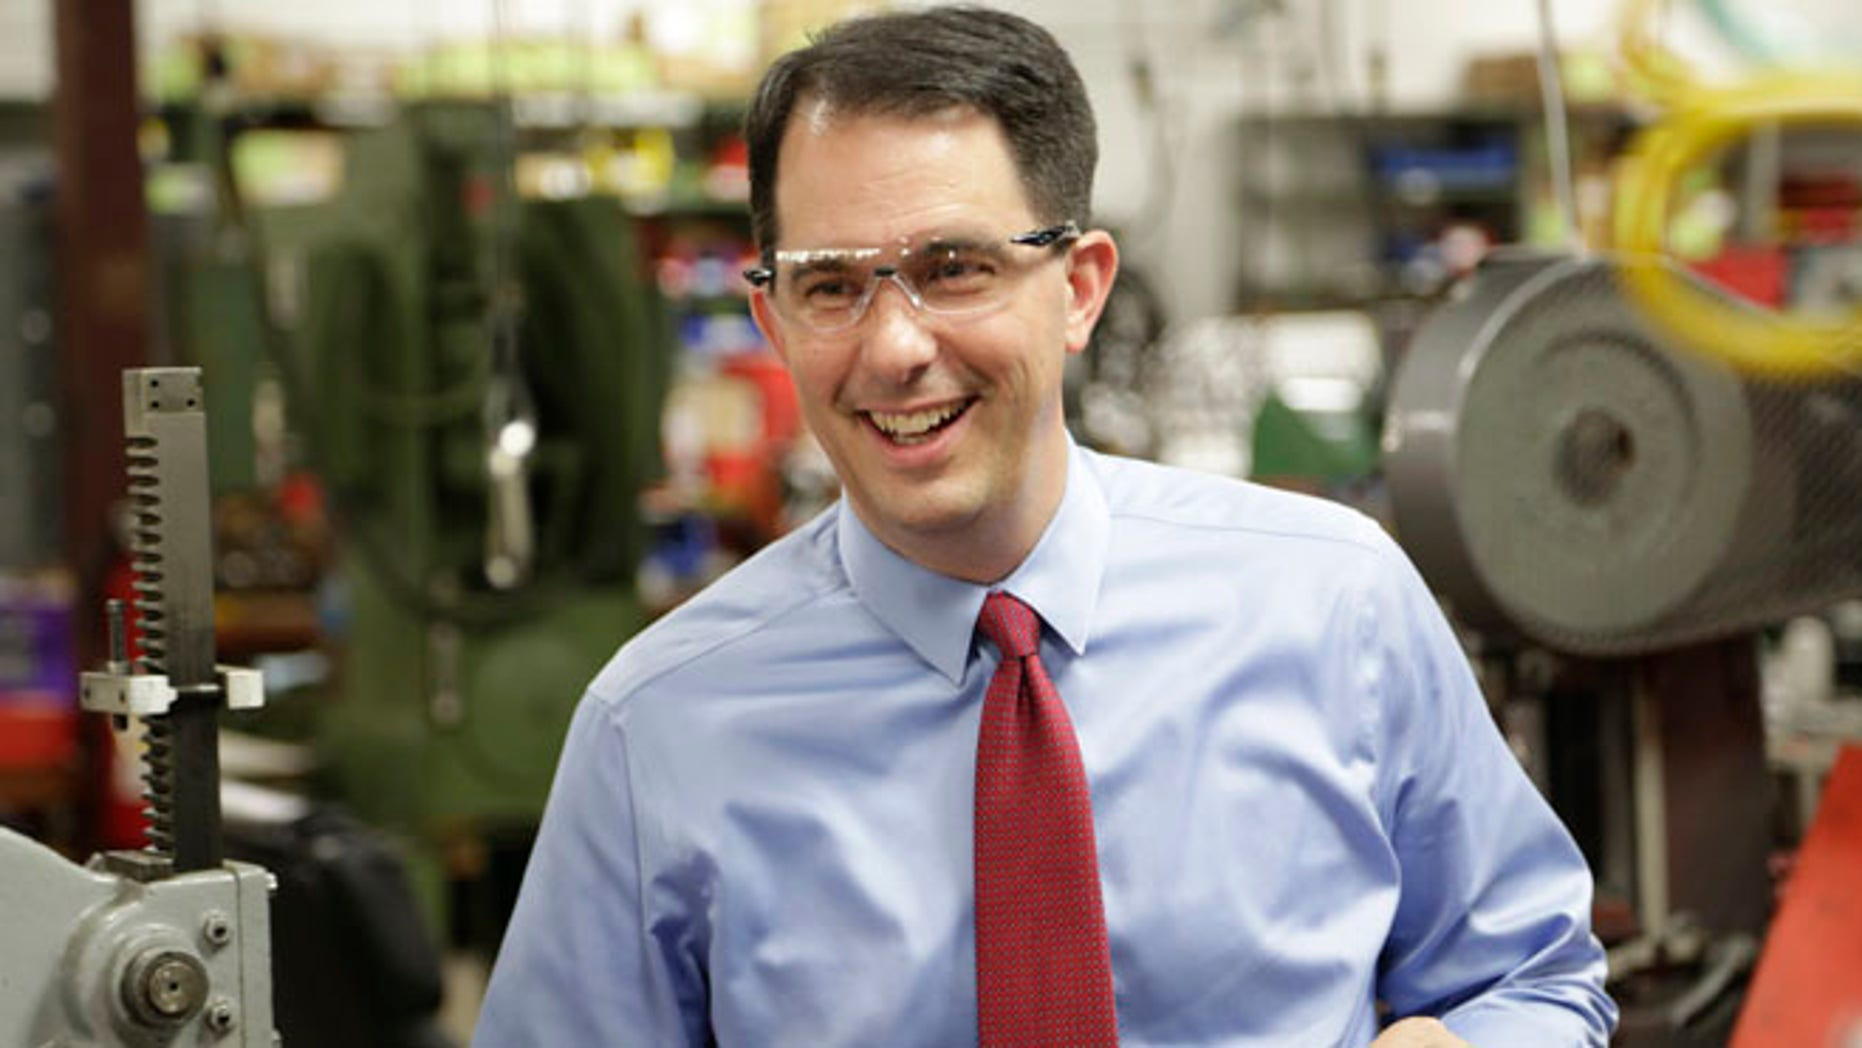 Sept. 23, 2014: Wisconsin Repubican Gov. Scott Walker makes a re-election campaign stop at a small business in Racine, Wis.